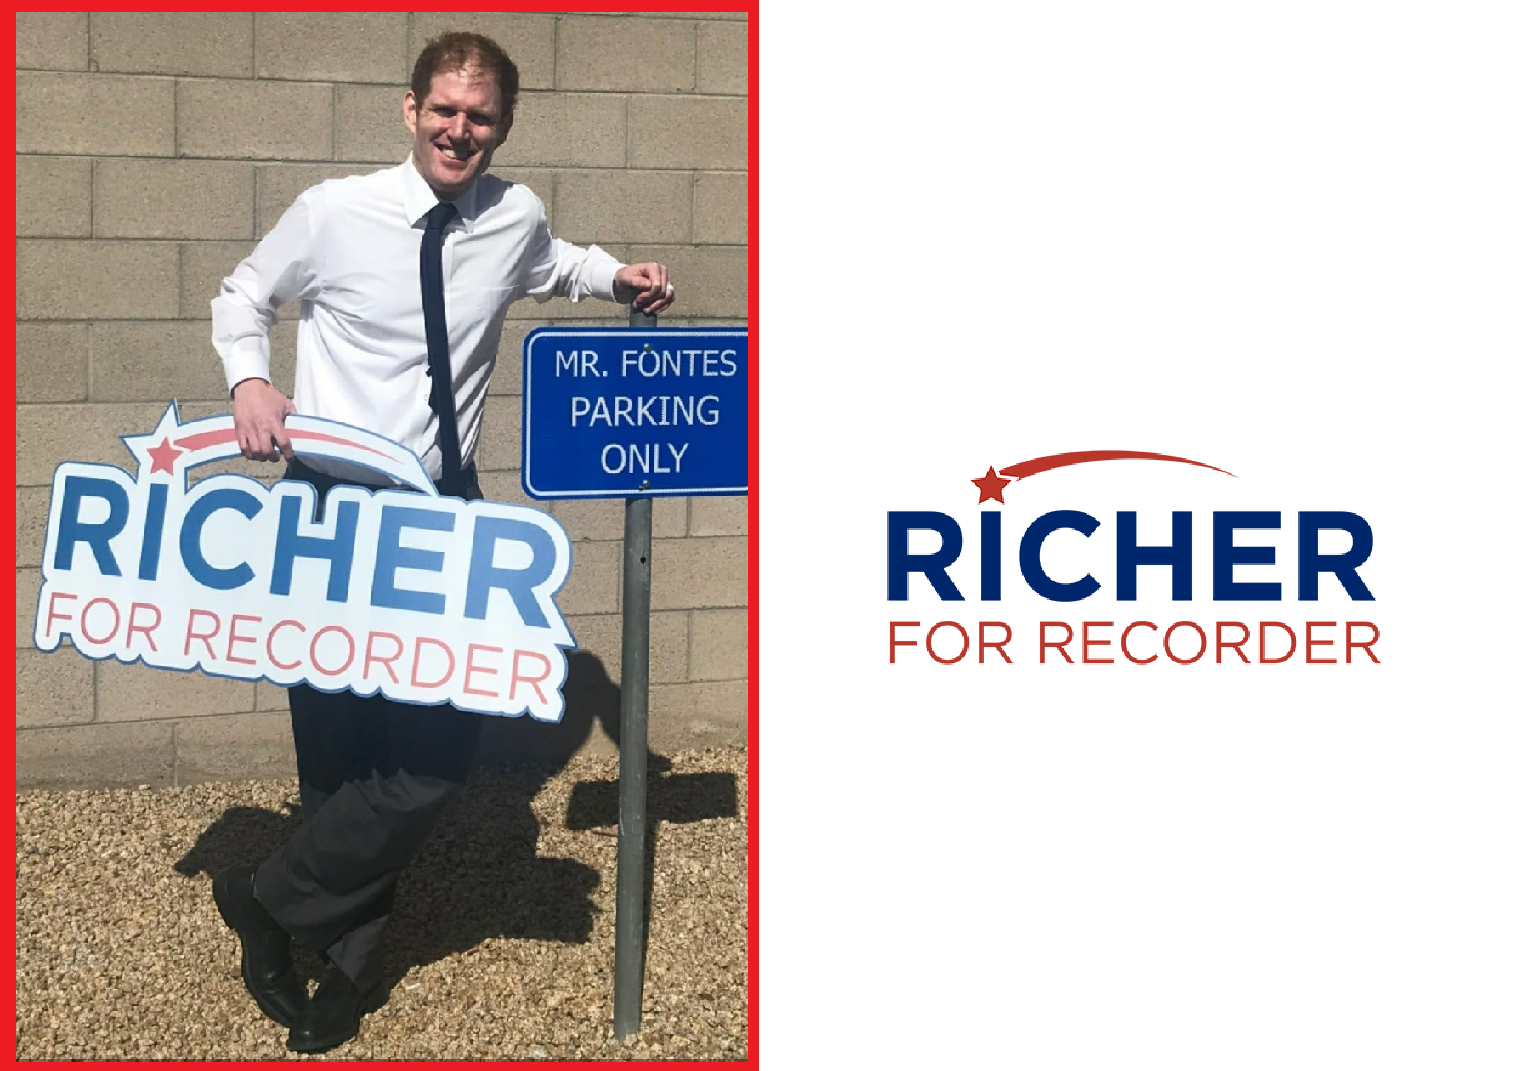 Richer For Recorder